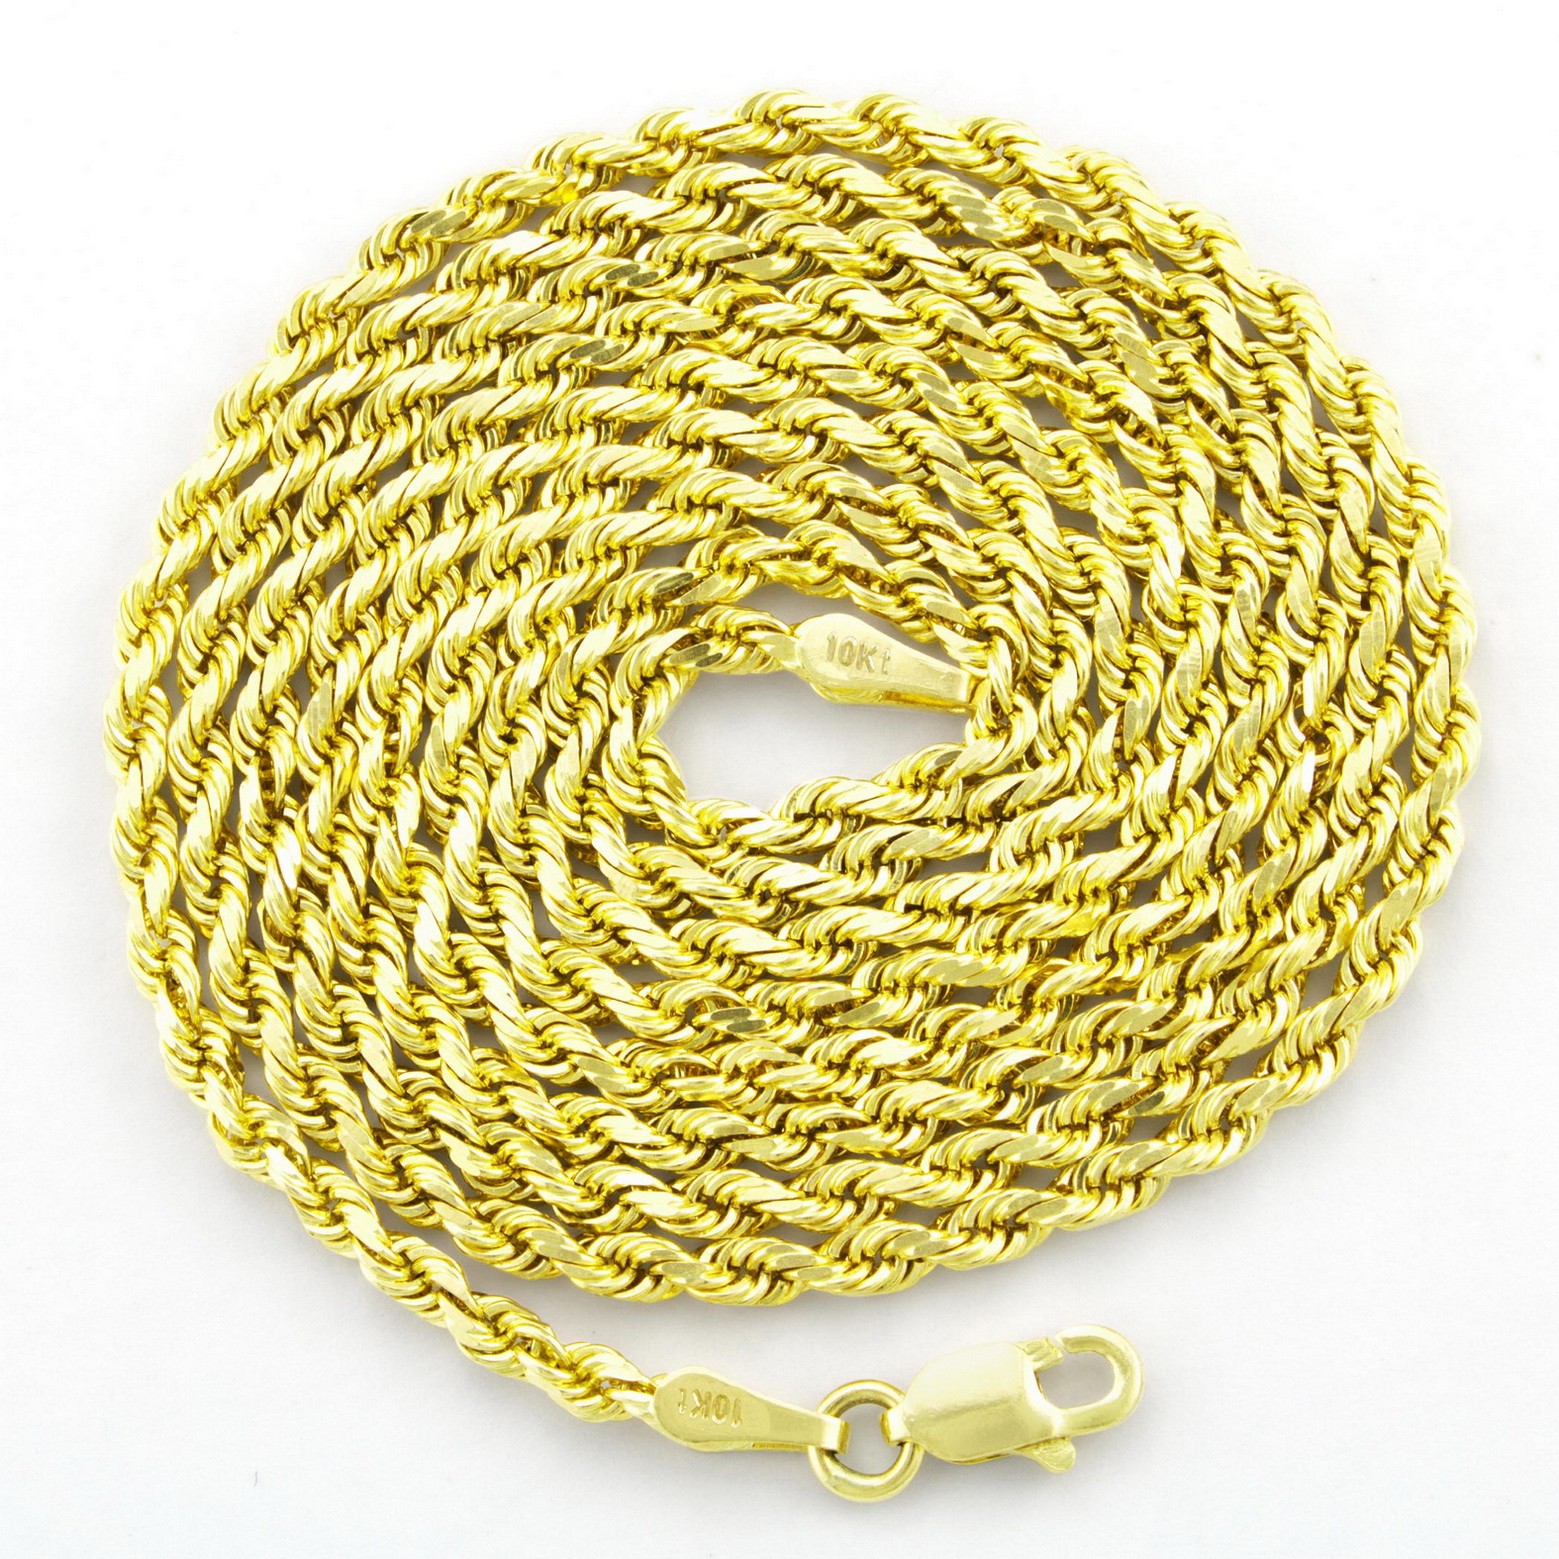 10K-Yellow-Gold-2-5mm-Solid-Rope-Chain-Pendant-Necklace-Lobster-Clasp-16-034-30-034 thumbnail 18